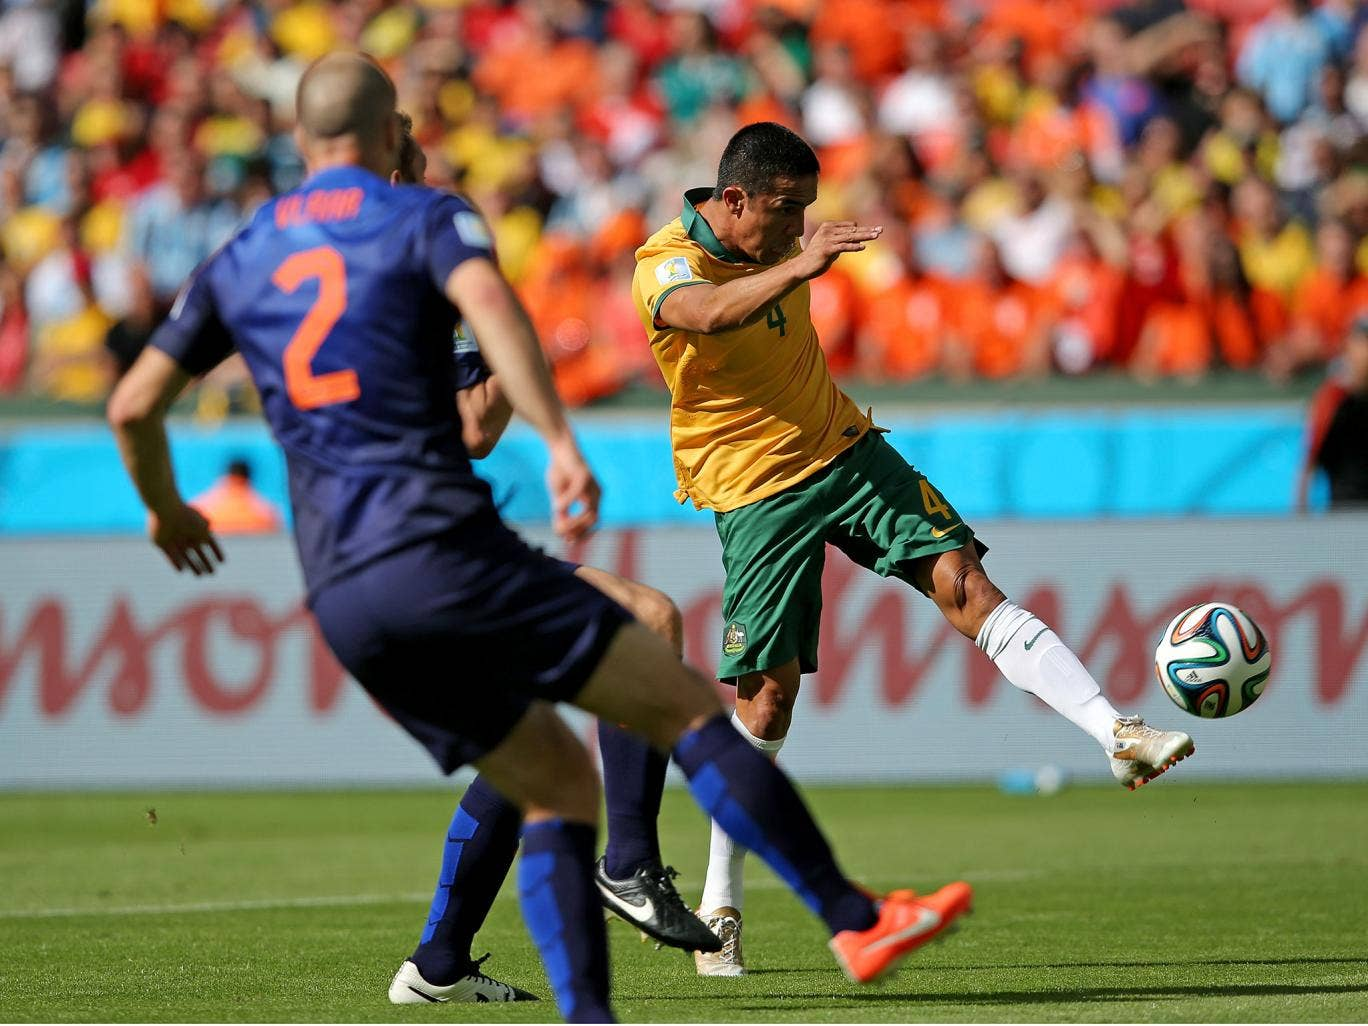 Tim Cahill strikes his astonishing volley against the Netherlands